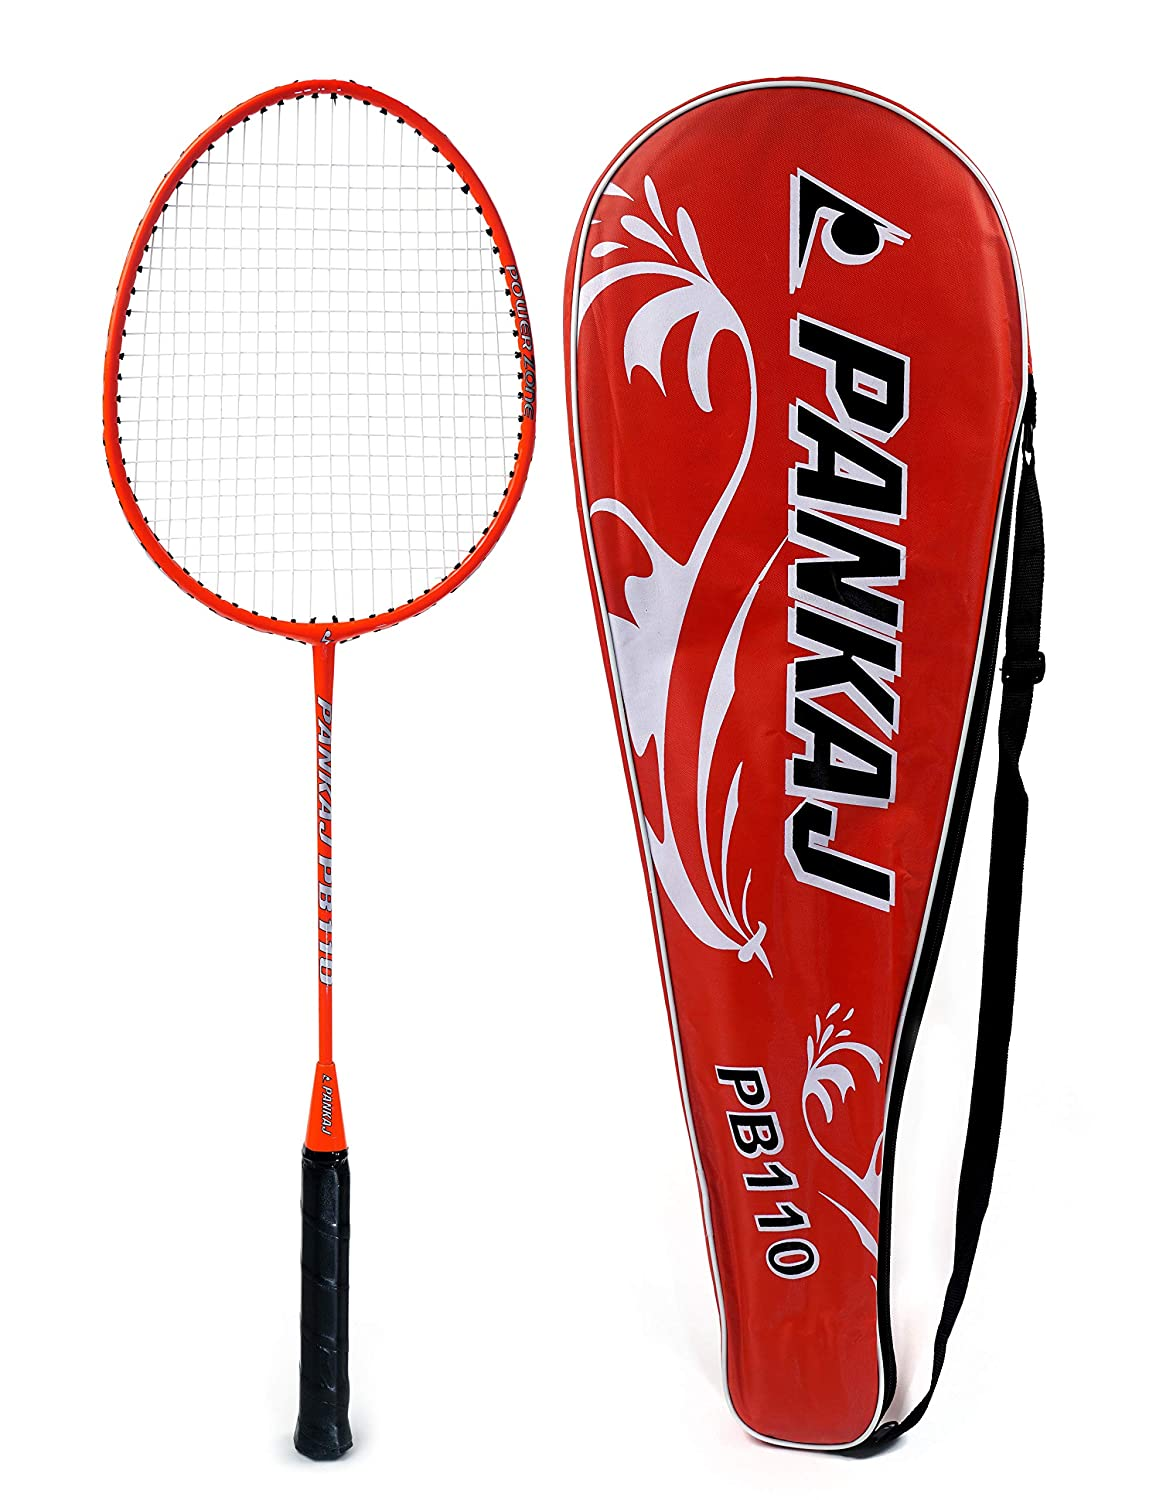 Badminton Rackets - PB 110 - Pack for 2 (Red)